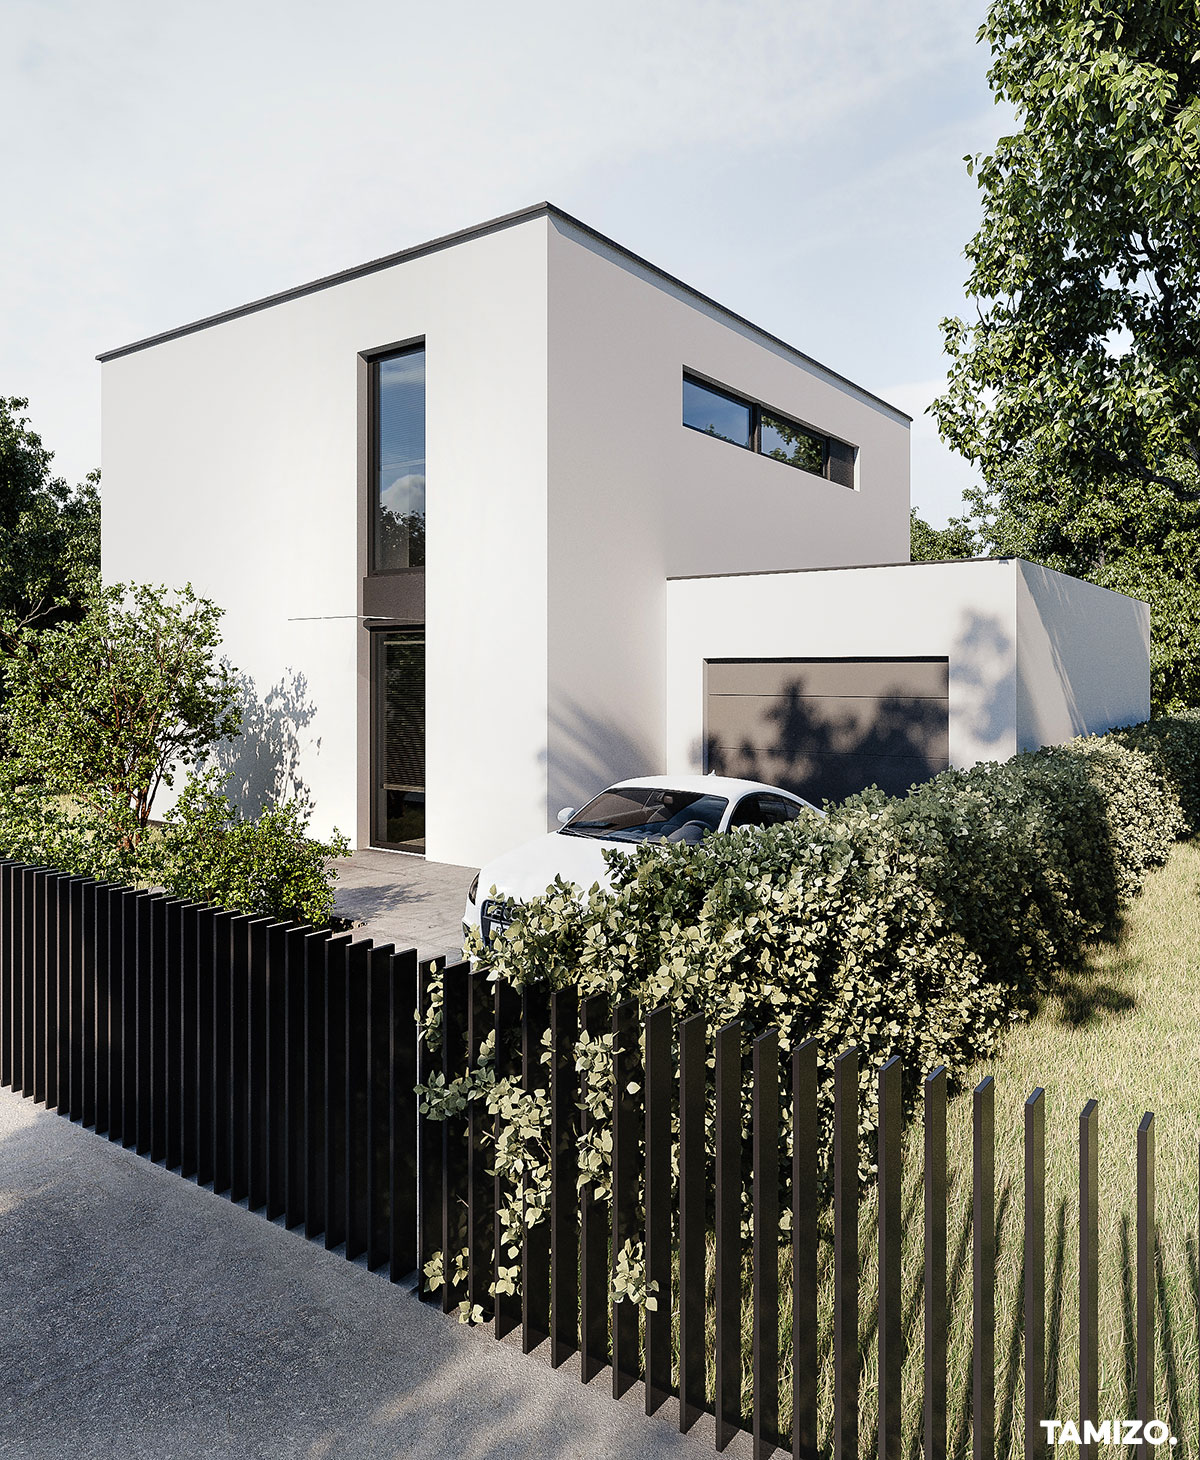 A071_tamizo_architects_berlin_small_house_design_project_01